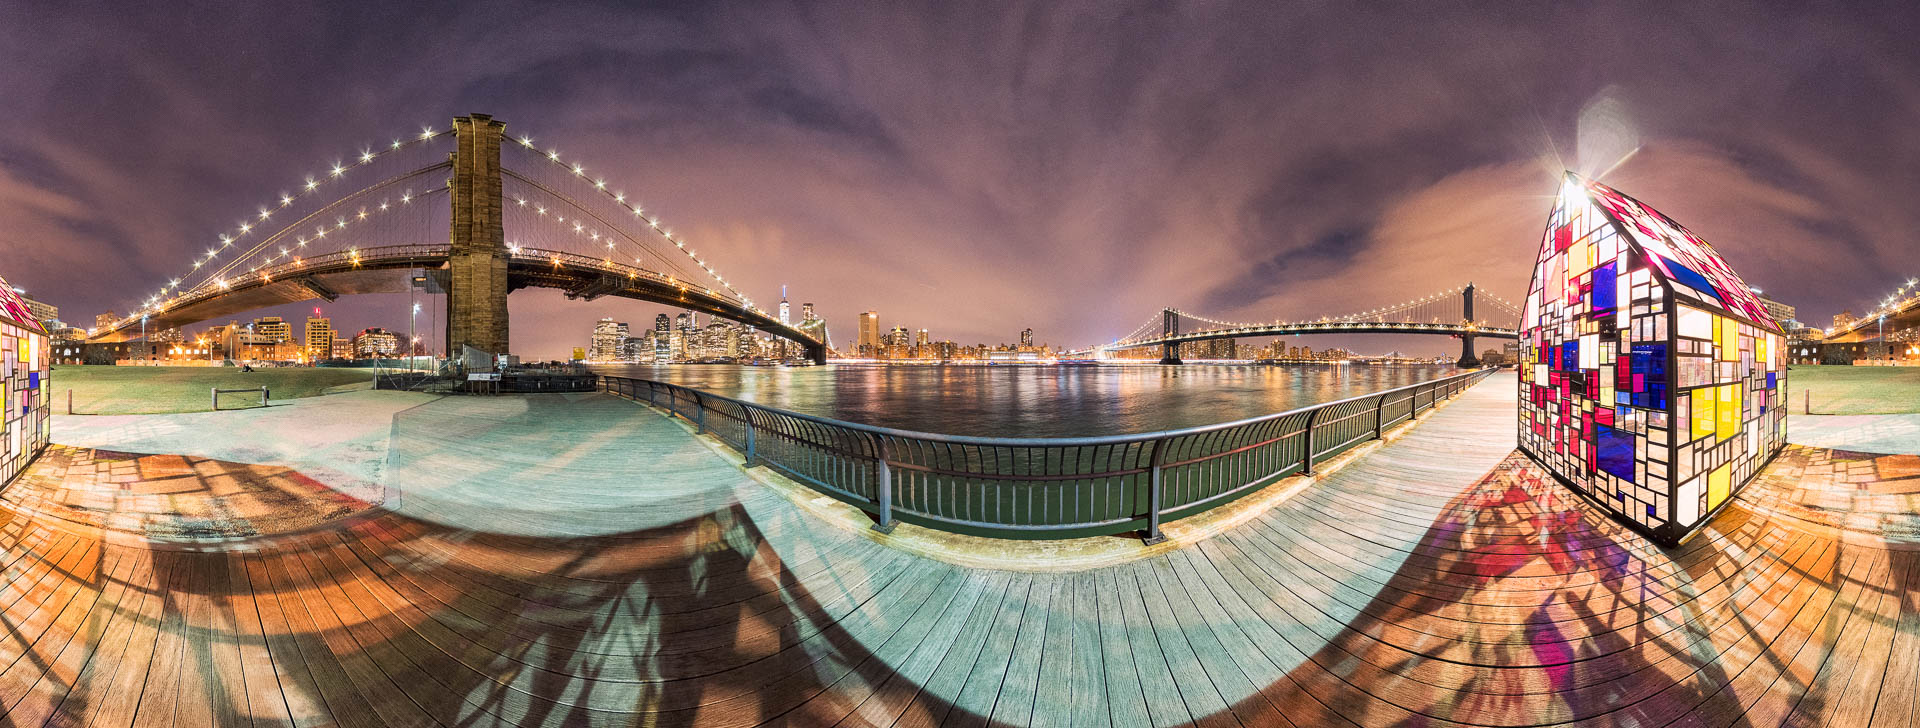 NYC DUMBO Glass House by Tobi Bohn Panorama 360 Fotograf